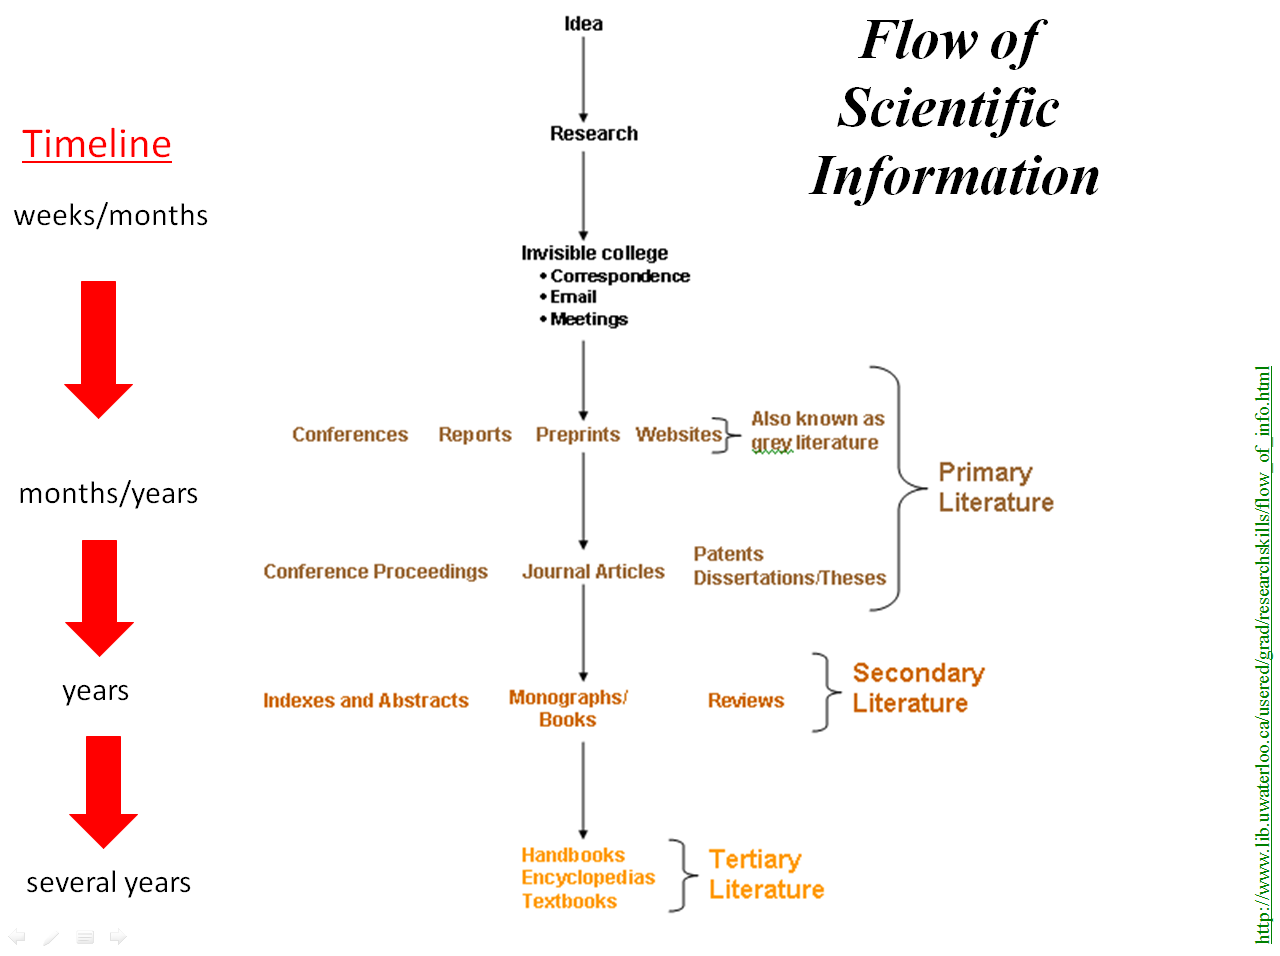 Flow of scientific information diagram